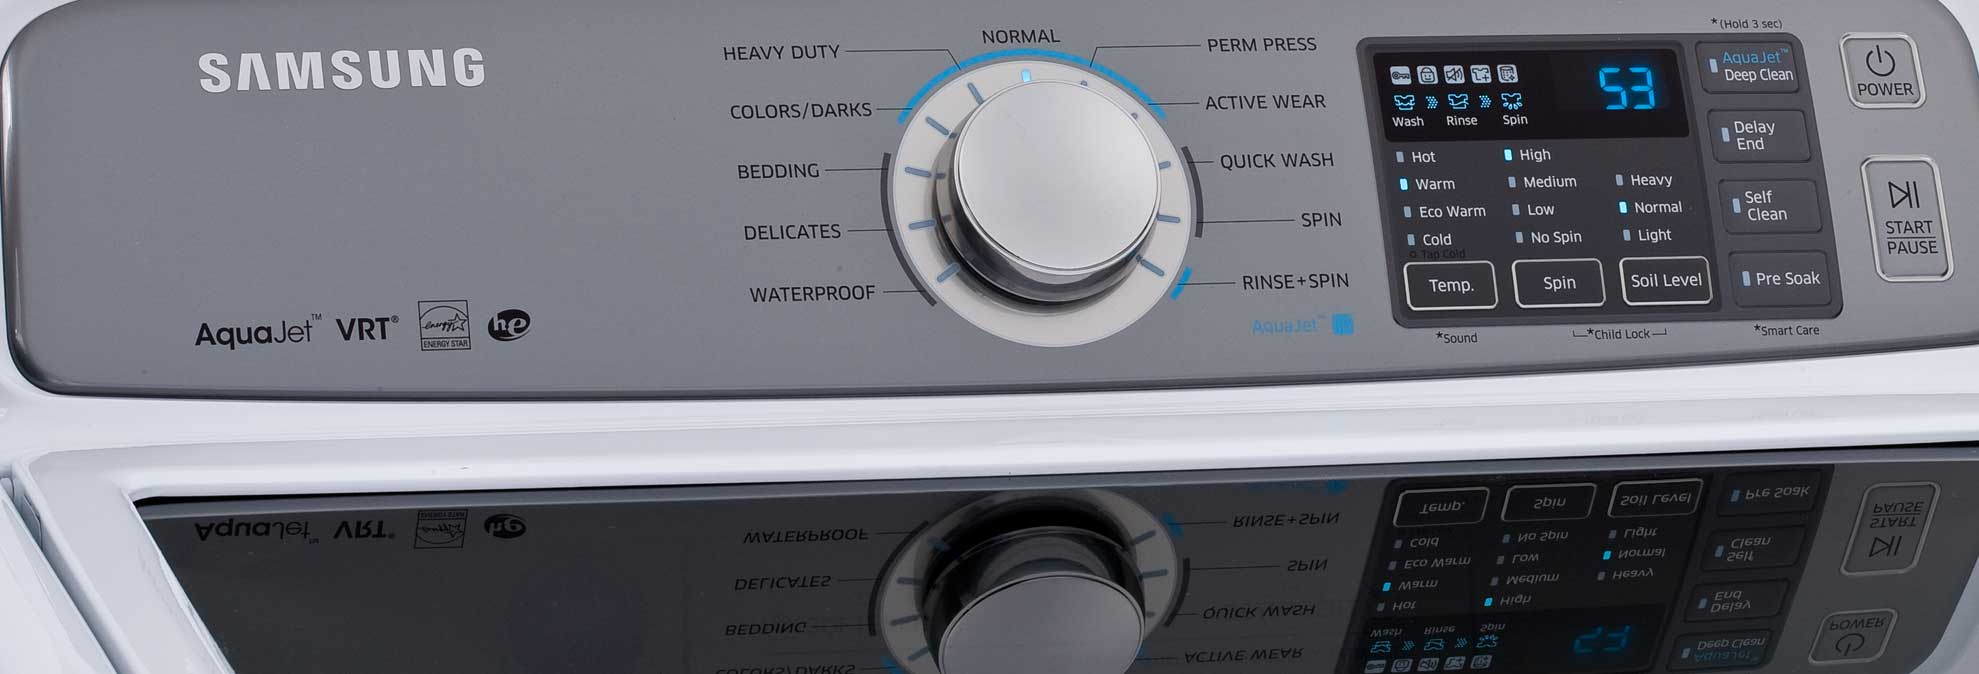 Samsung Recall Top Loading Washing Machines Consumer Reports Electronic Timer Circuit For Machine